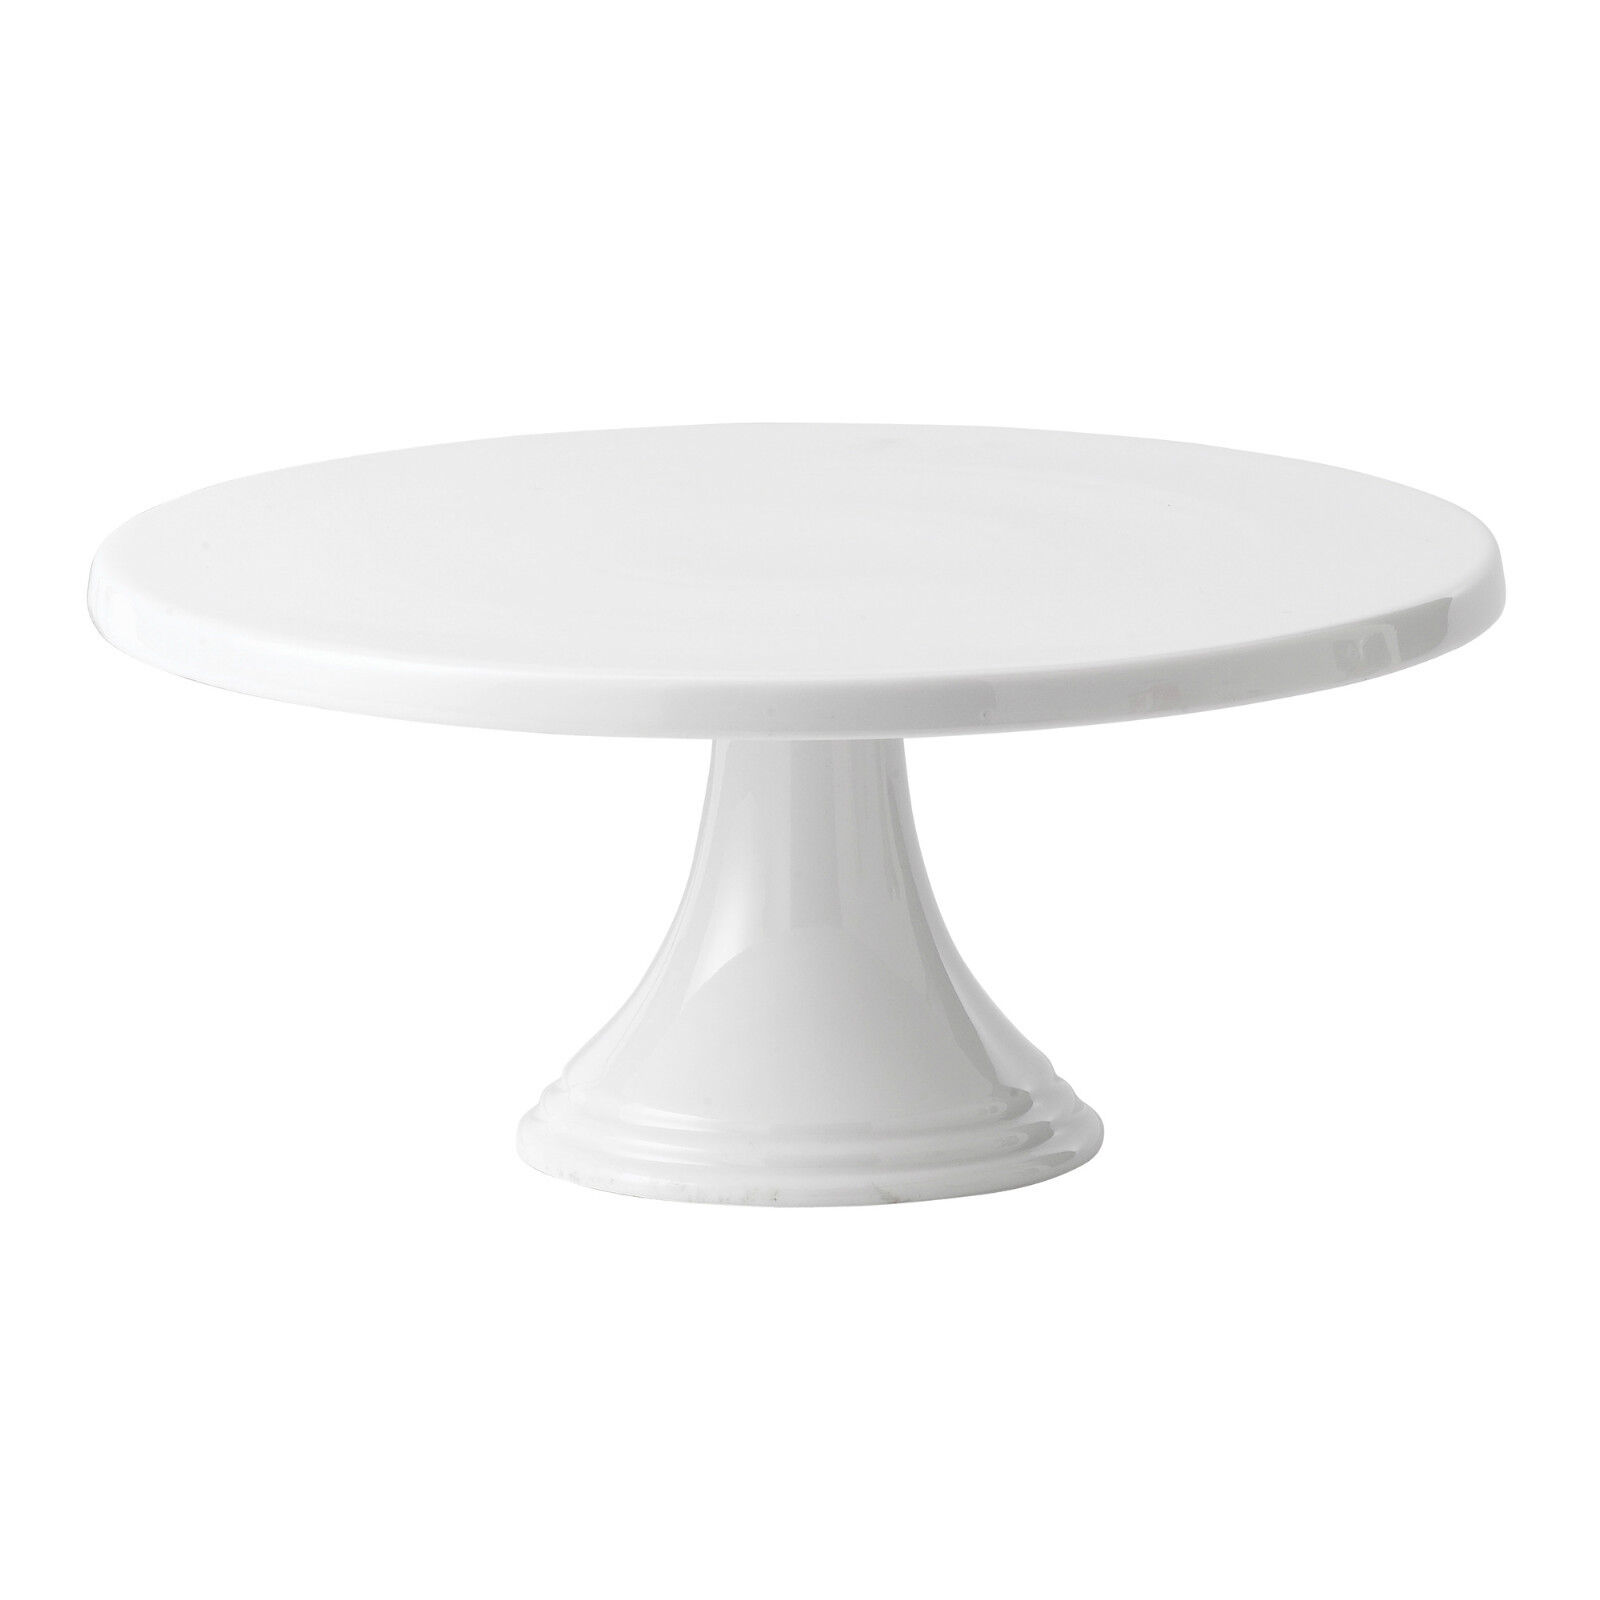 white cake stand white cake stand deals on 1001 blocks 30523